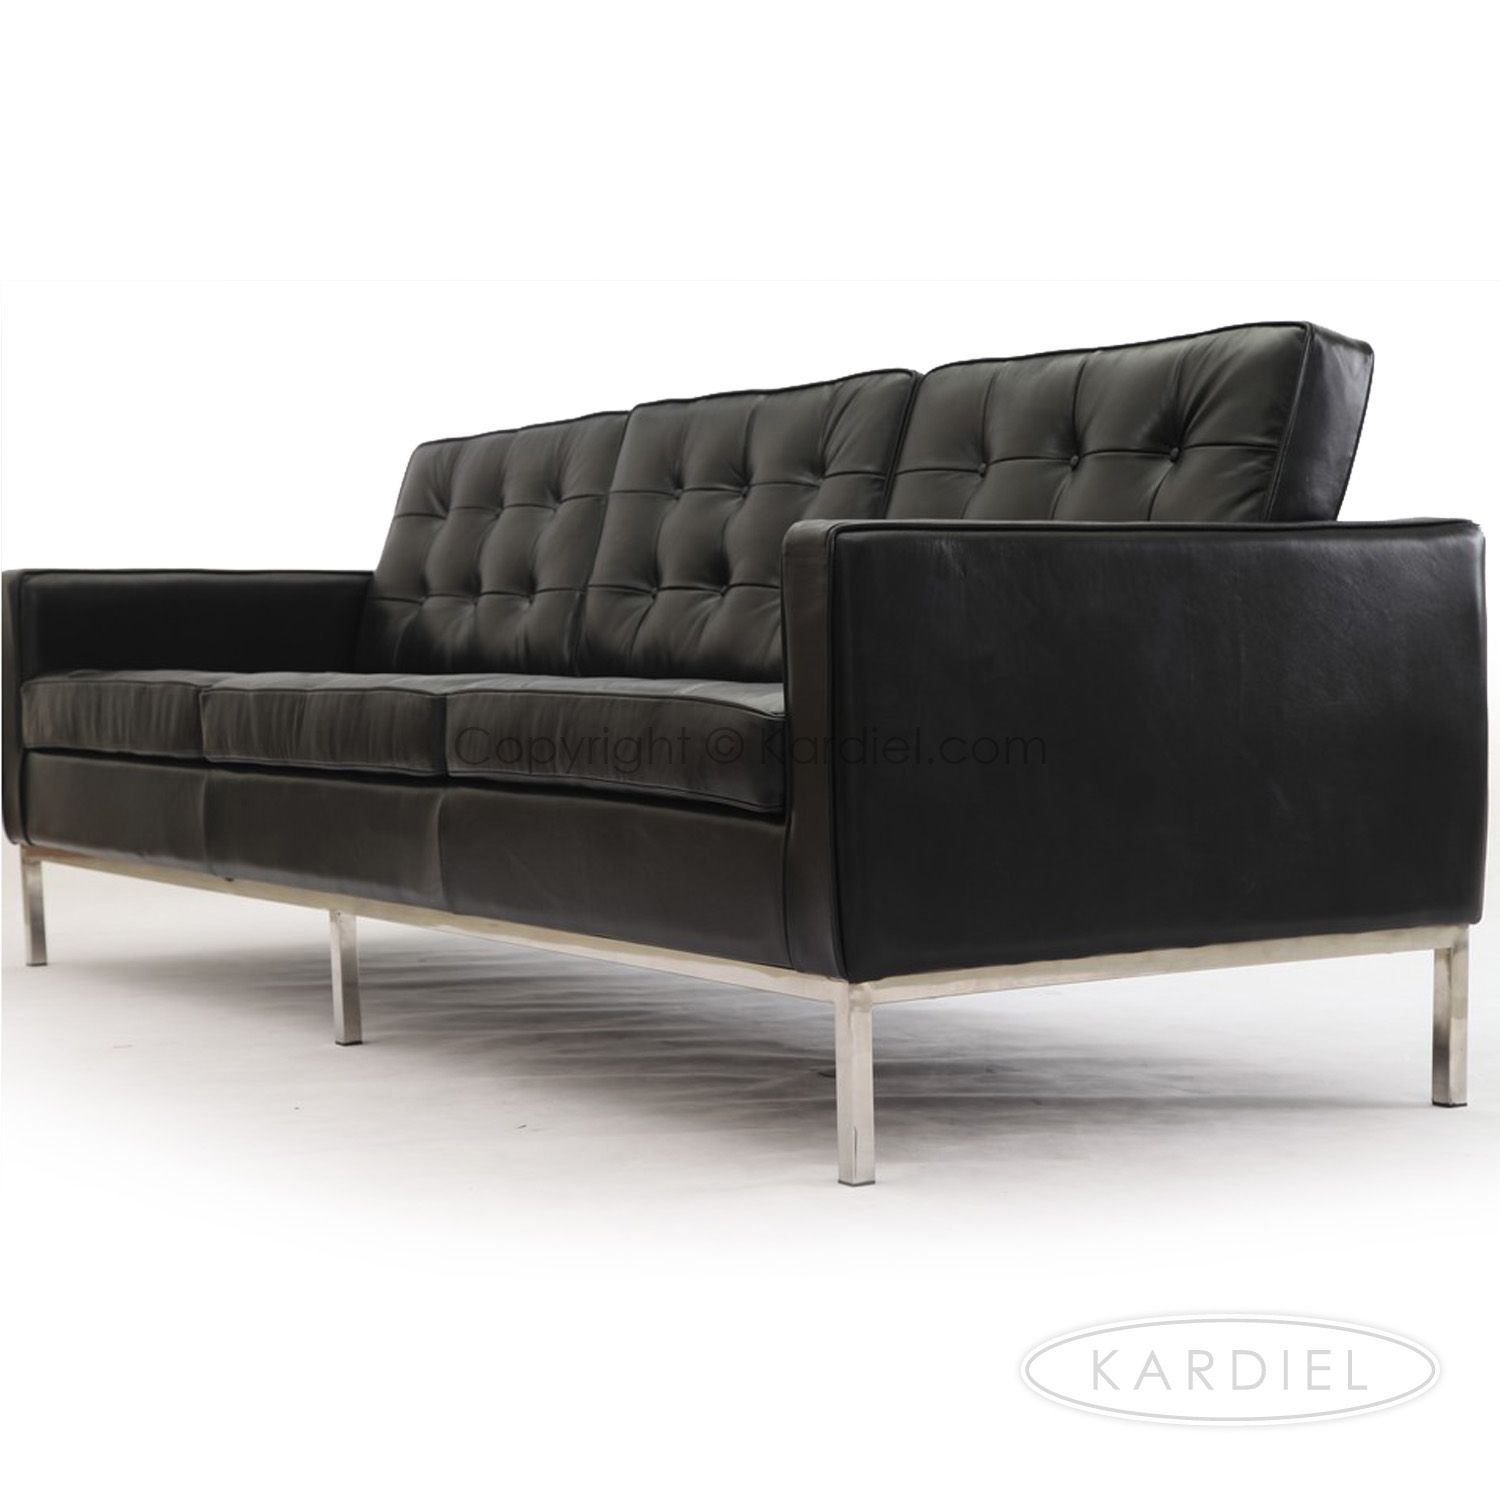 Florence Knoll Sofa Settee Reproduction Style 3 Seater Corner |